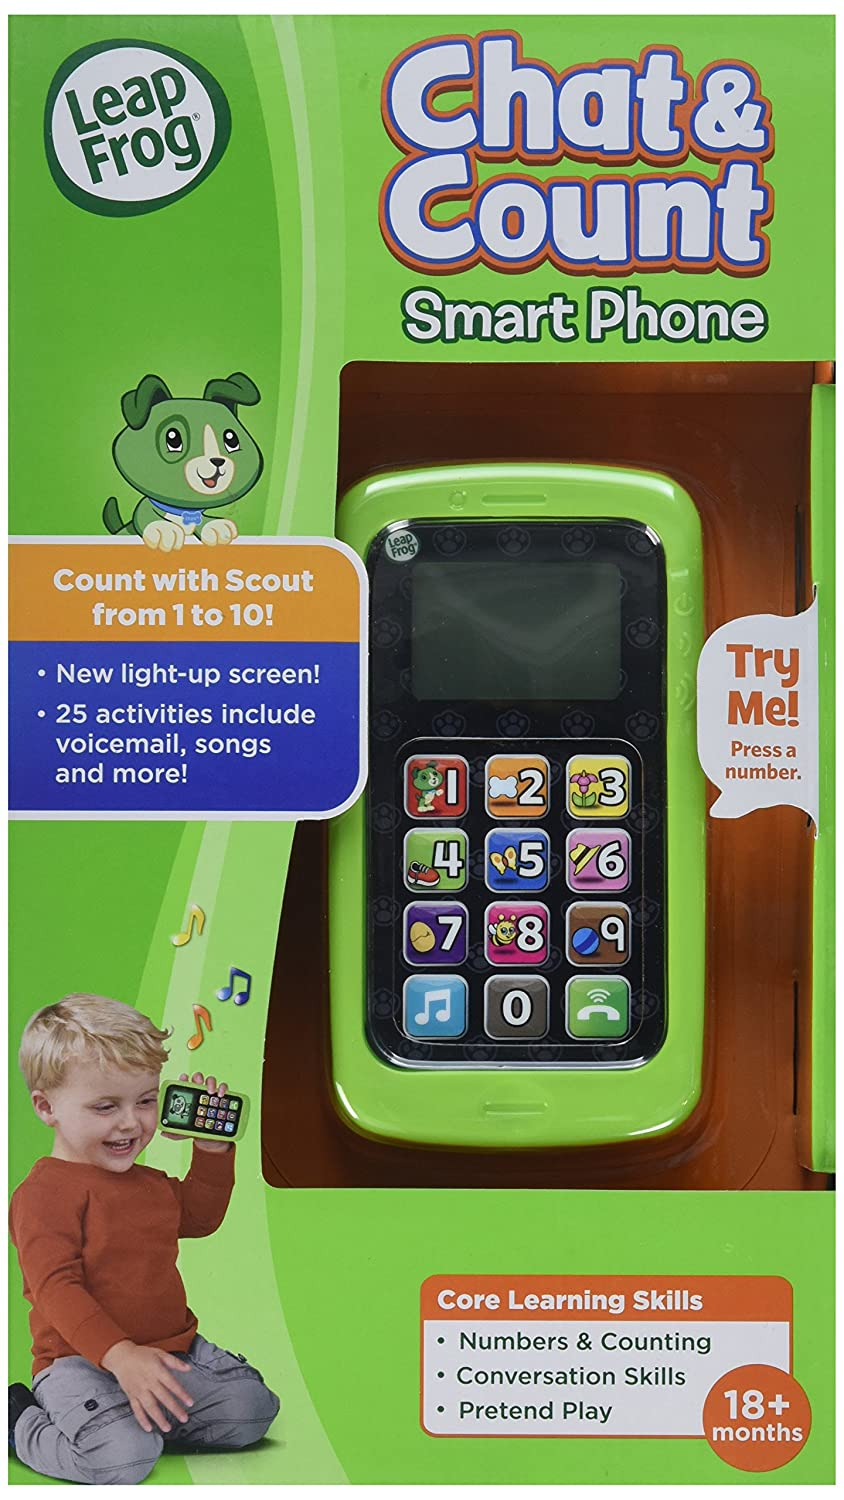 Amazon.com: LeapFrog Chat and Count Smart Phone, Scout, Assorted ...